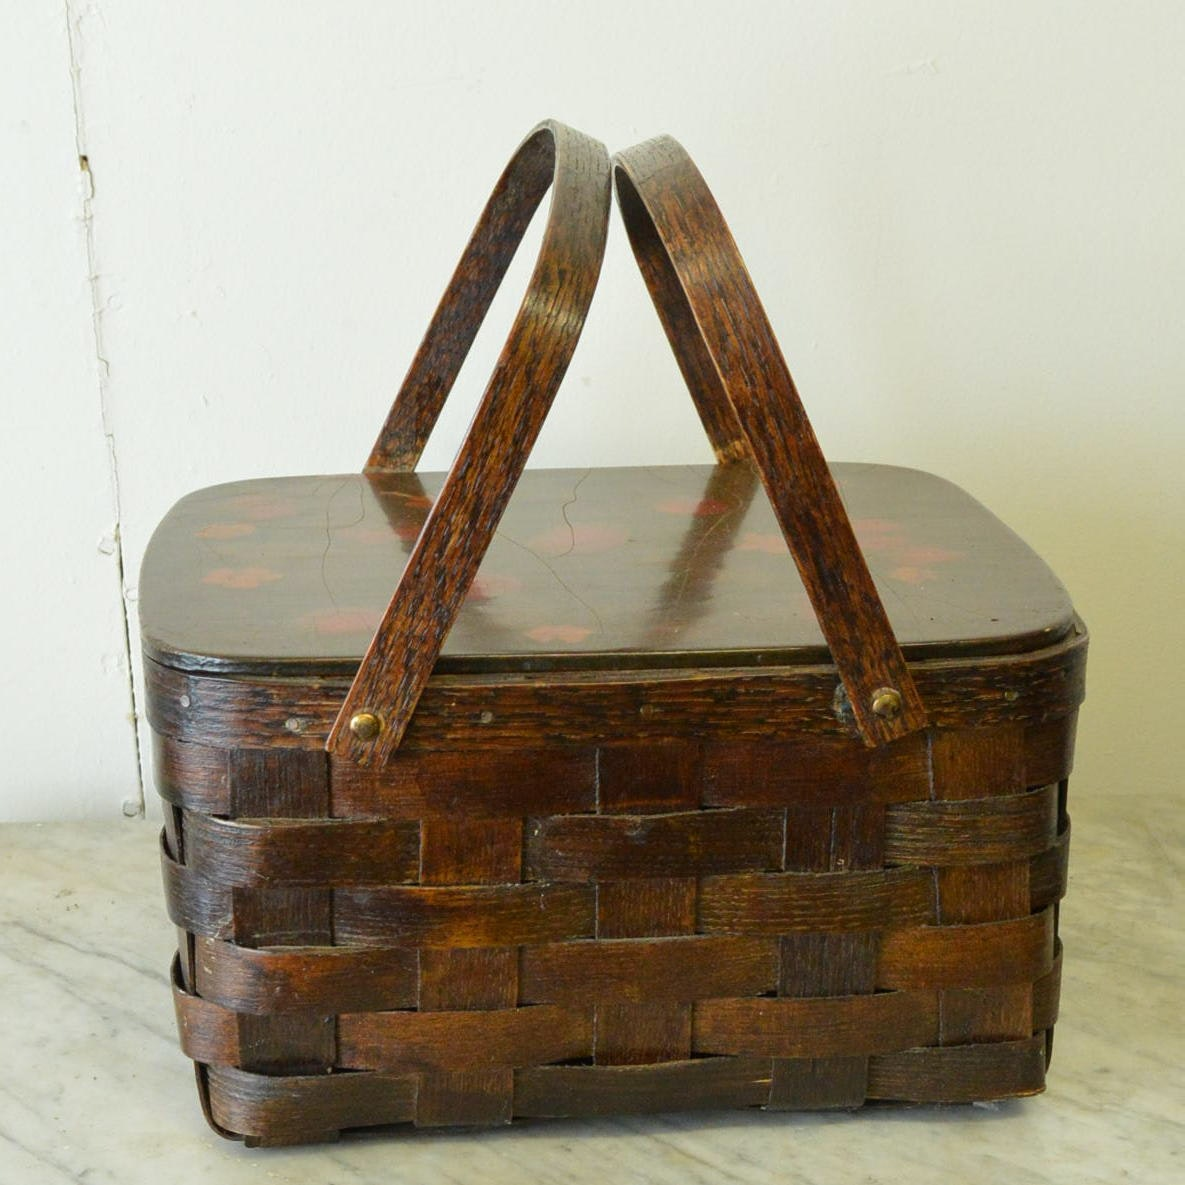 Vintage Wicker Picnic Basket With Hand Painted Design